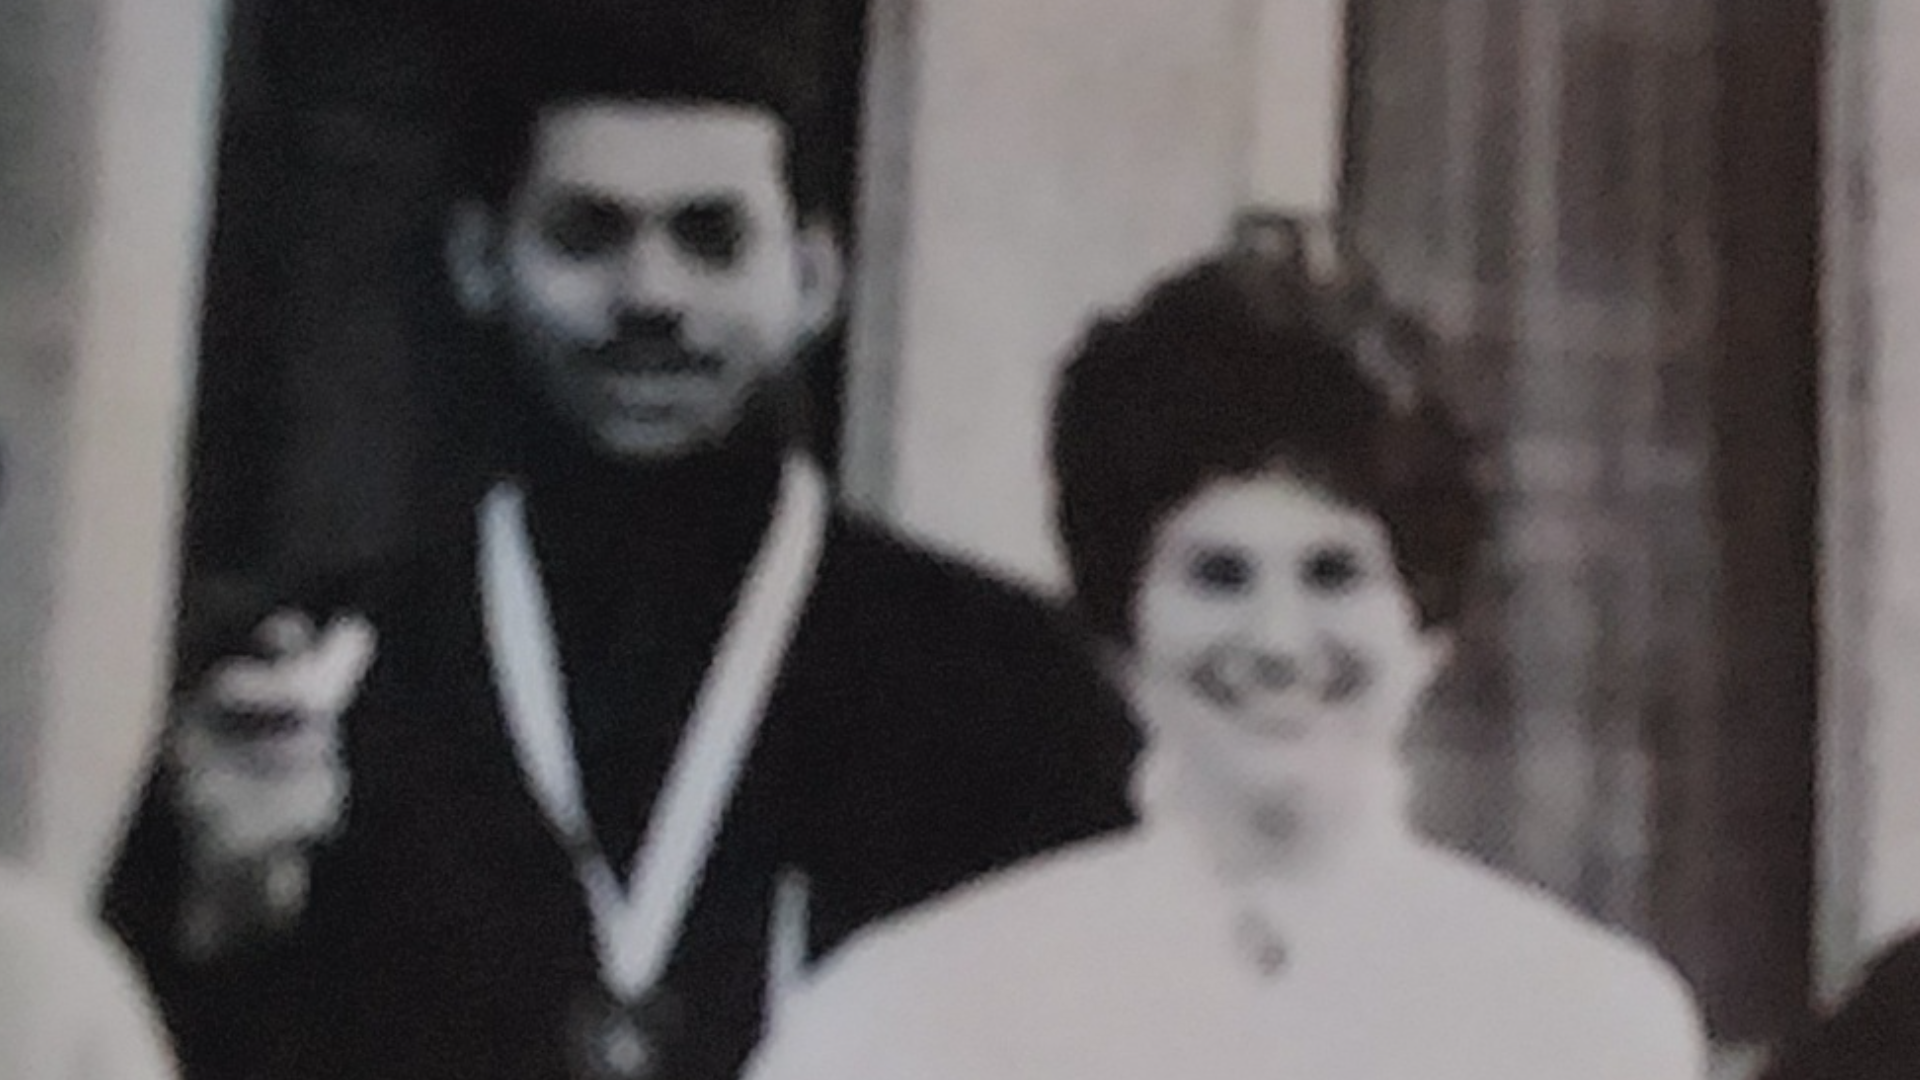 After 42 years, Portland woman searches for college sweetheart | kgw.com